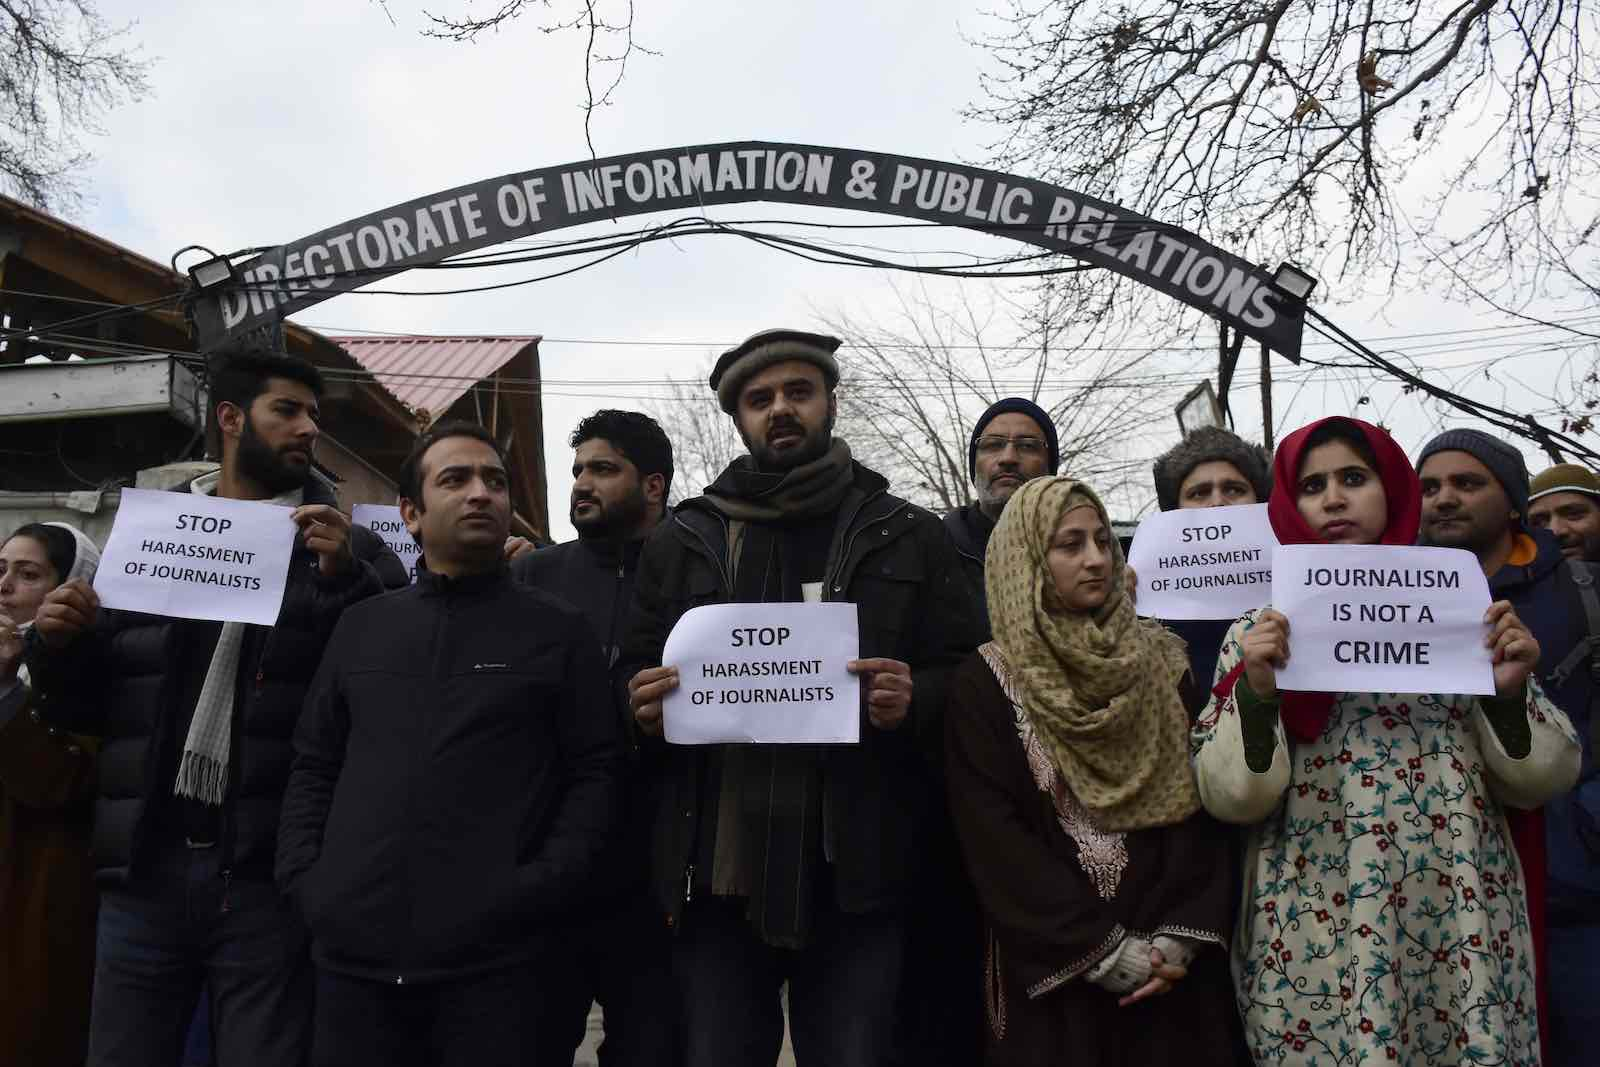 Kashmiri journalists protest in Srinagar, Indian Administered Kashmir, on 18 December 2019, the day after journalists covering a student protest were beaten by security forces (Photo: Muzamil Mattoo/NurPhoto via Getty Images)